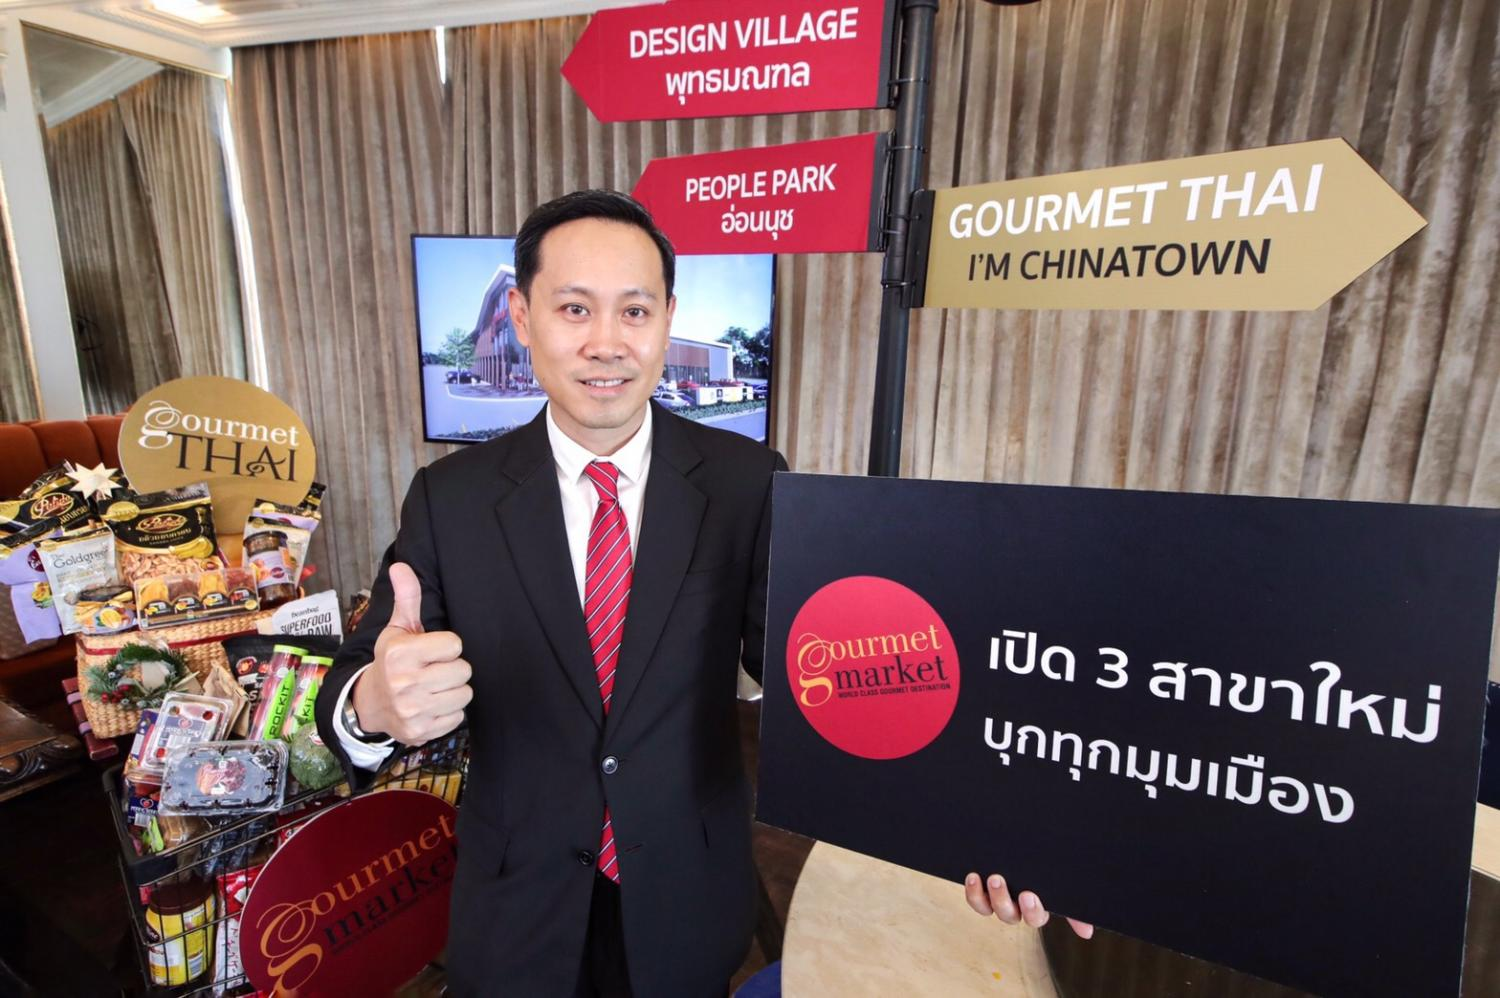 Mr Chairat says the company has spent 140 million baht this year to open three stand-alone Gourmet Market branches.